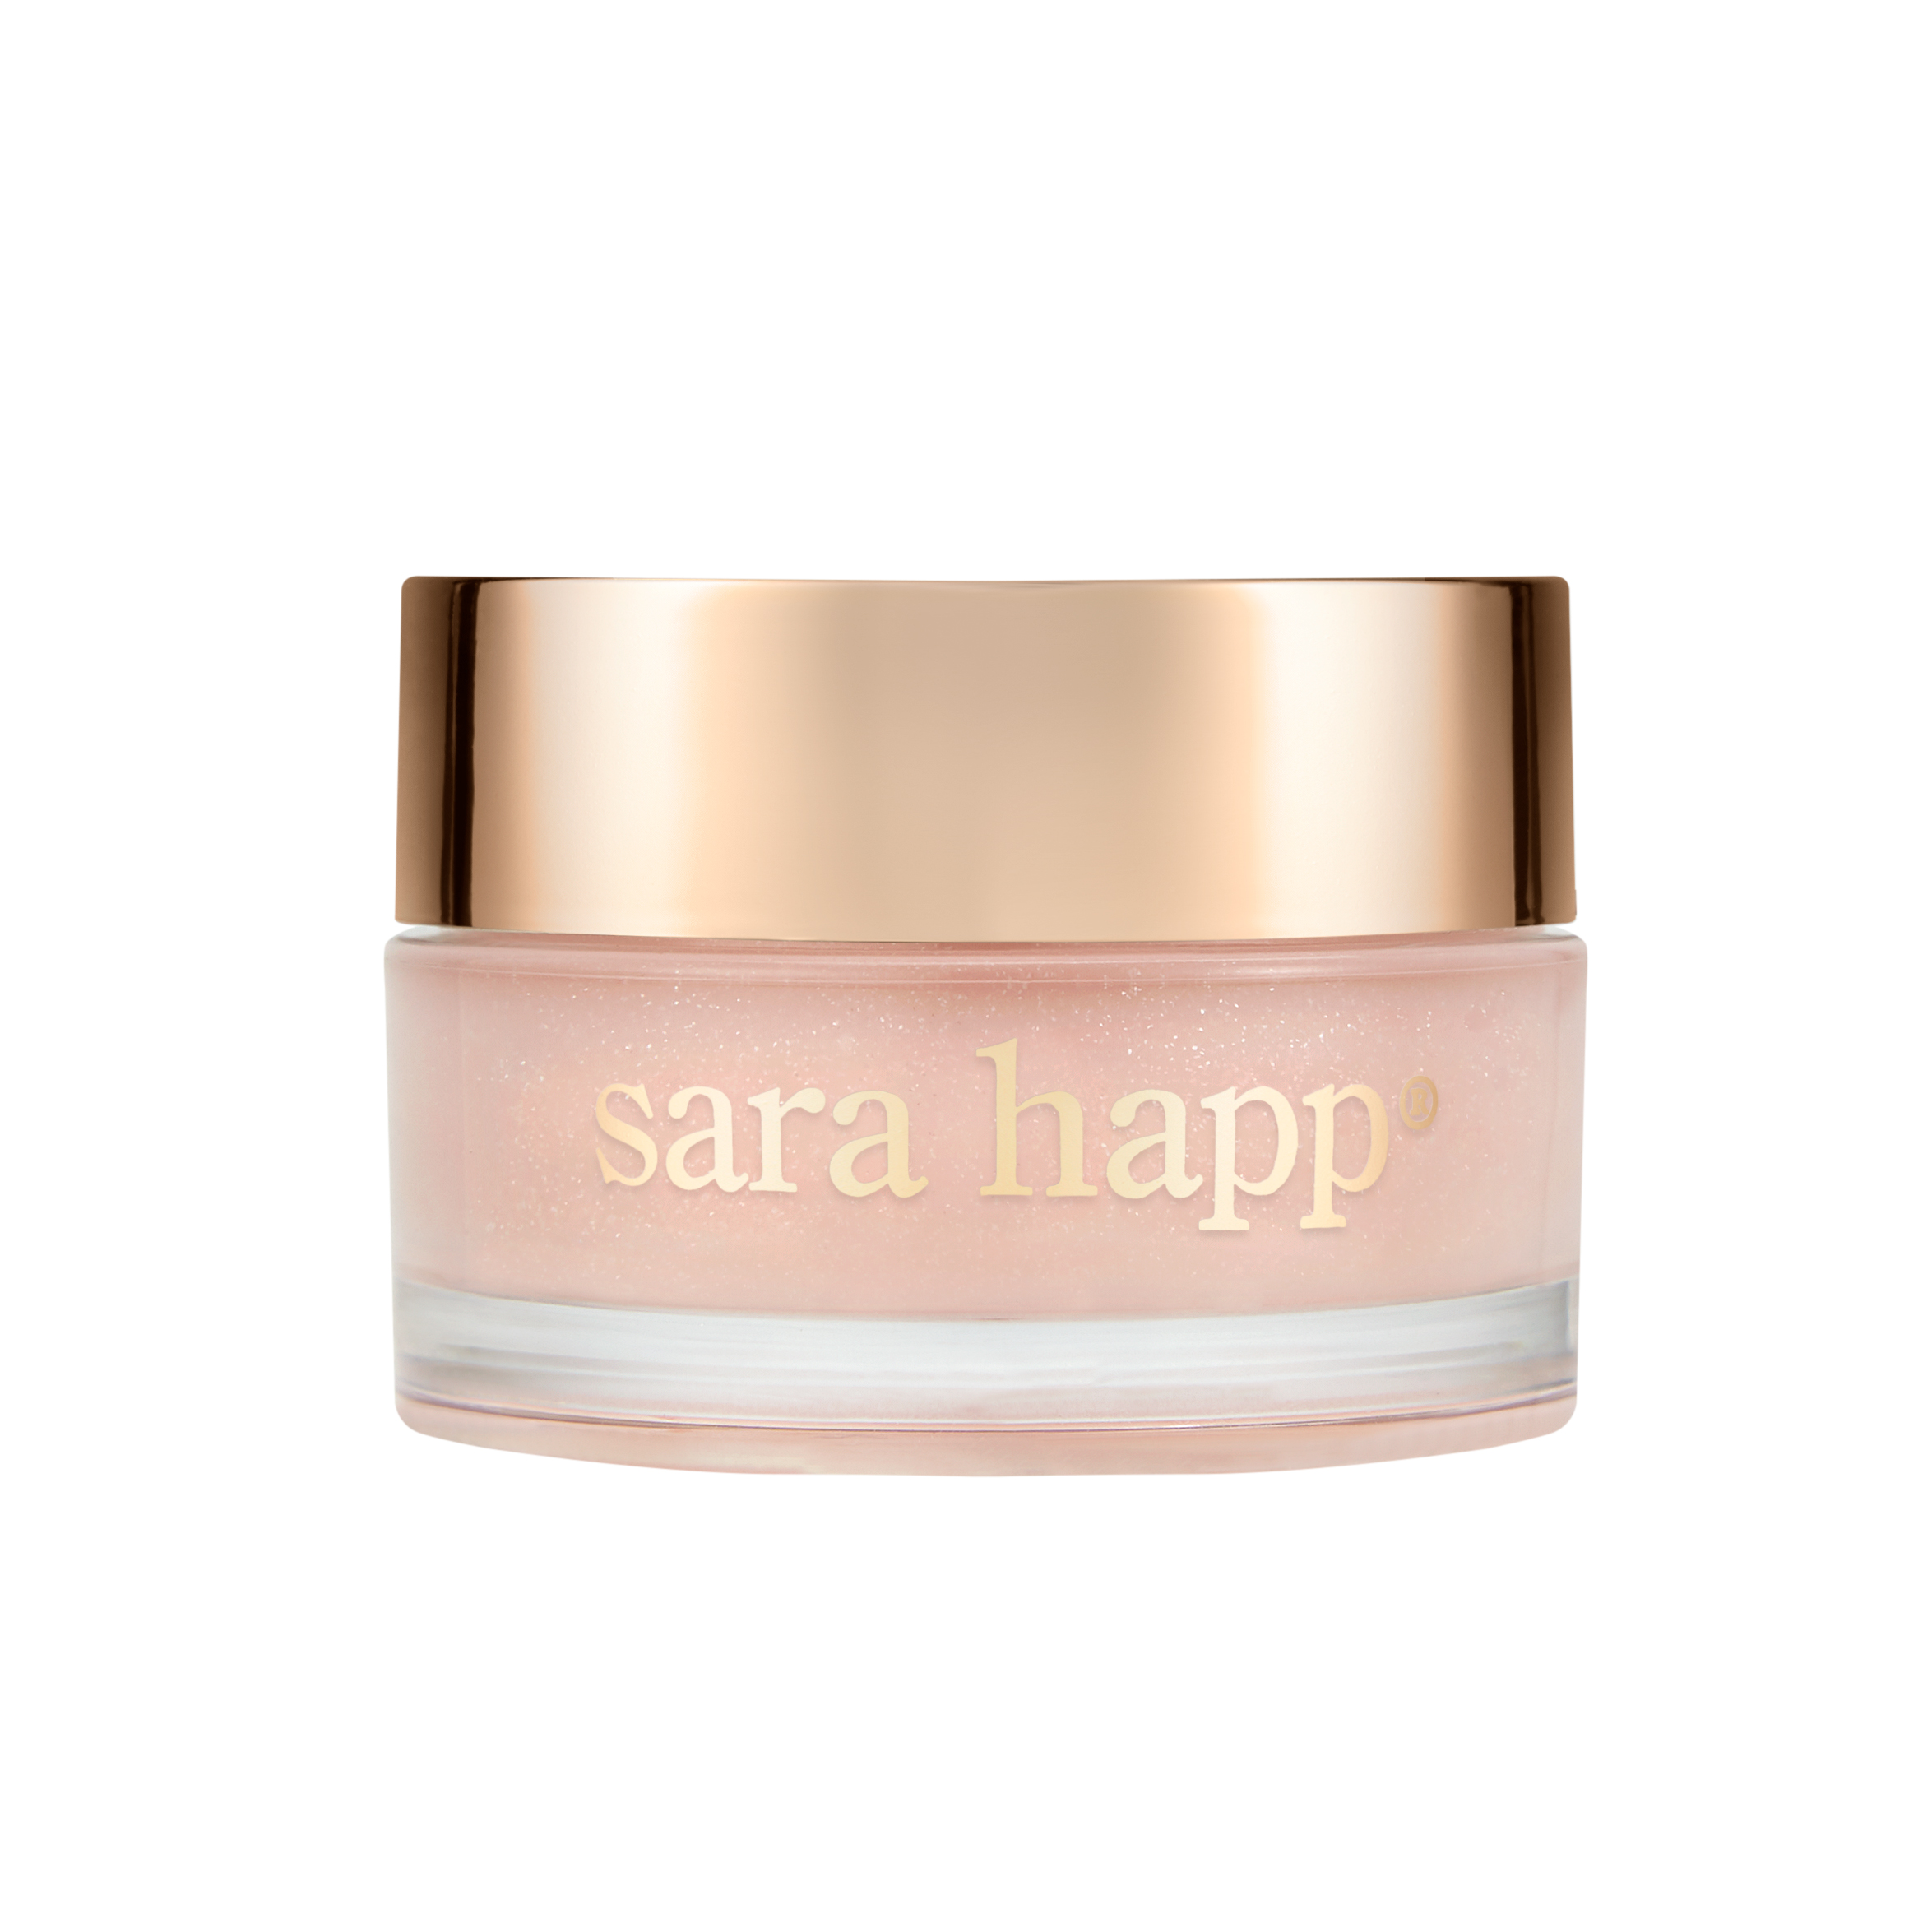 """5. Sara Happ - After reading """"exfoliate lips with a wet washcloth or toothbrush"""" for the twentieth time, and knowing that she had a scrub for every part of her body but not her lips, Sara Happ decided she'd just have to make it herself. Now, trademarked as The Lip Expert, Sara continues to push boundaries and formulate new lip products that do not exist.Star Product Sara Happ® The Lip Slip® Lip Balm $42 from www.nordstrom.com"""